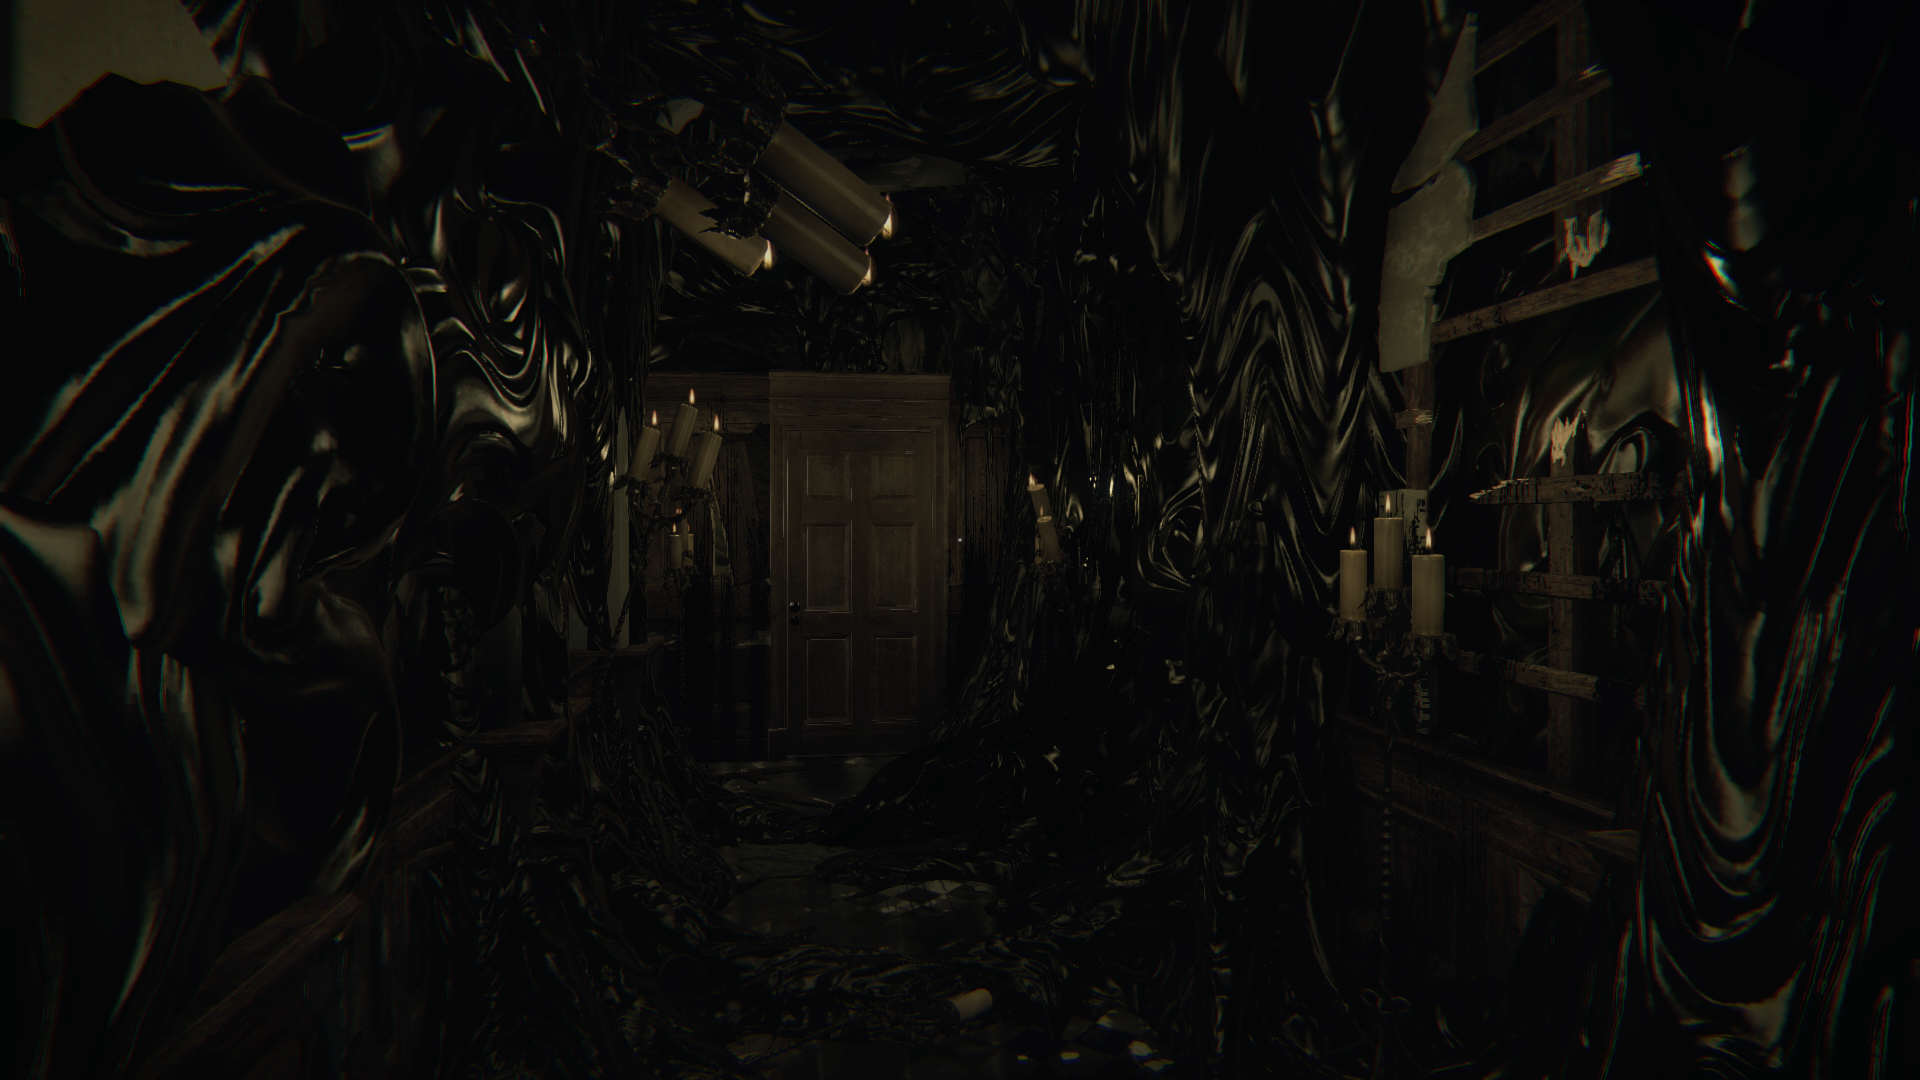 Layers Of Fear Is Isolating, Tense And Unashamedly Terrifying pu28dd2c7955ce926456240b2ff0100bde 1453306972 2729294 screenshot original